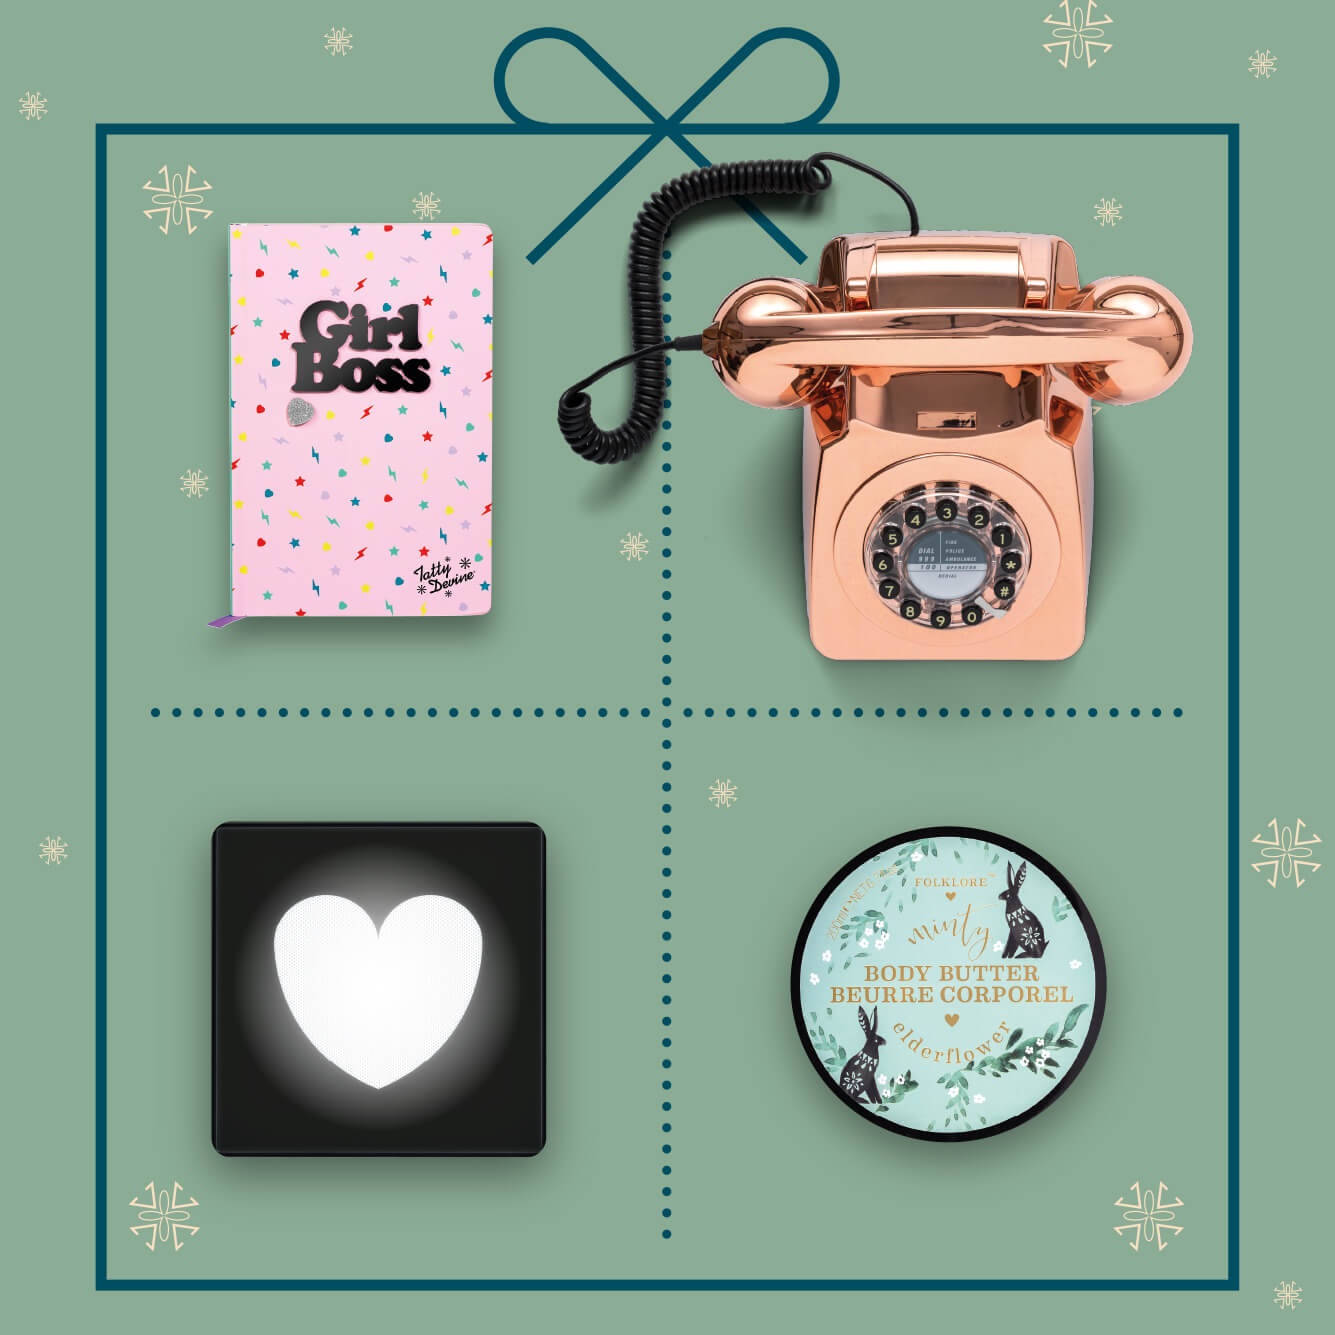 Shop women's Holiday gift ideas from Wild & Wolf - All wrapped up